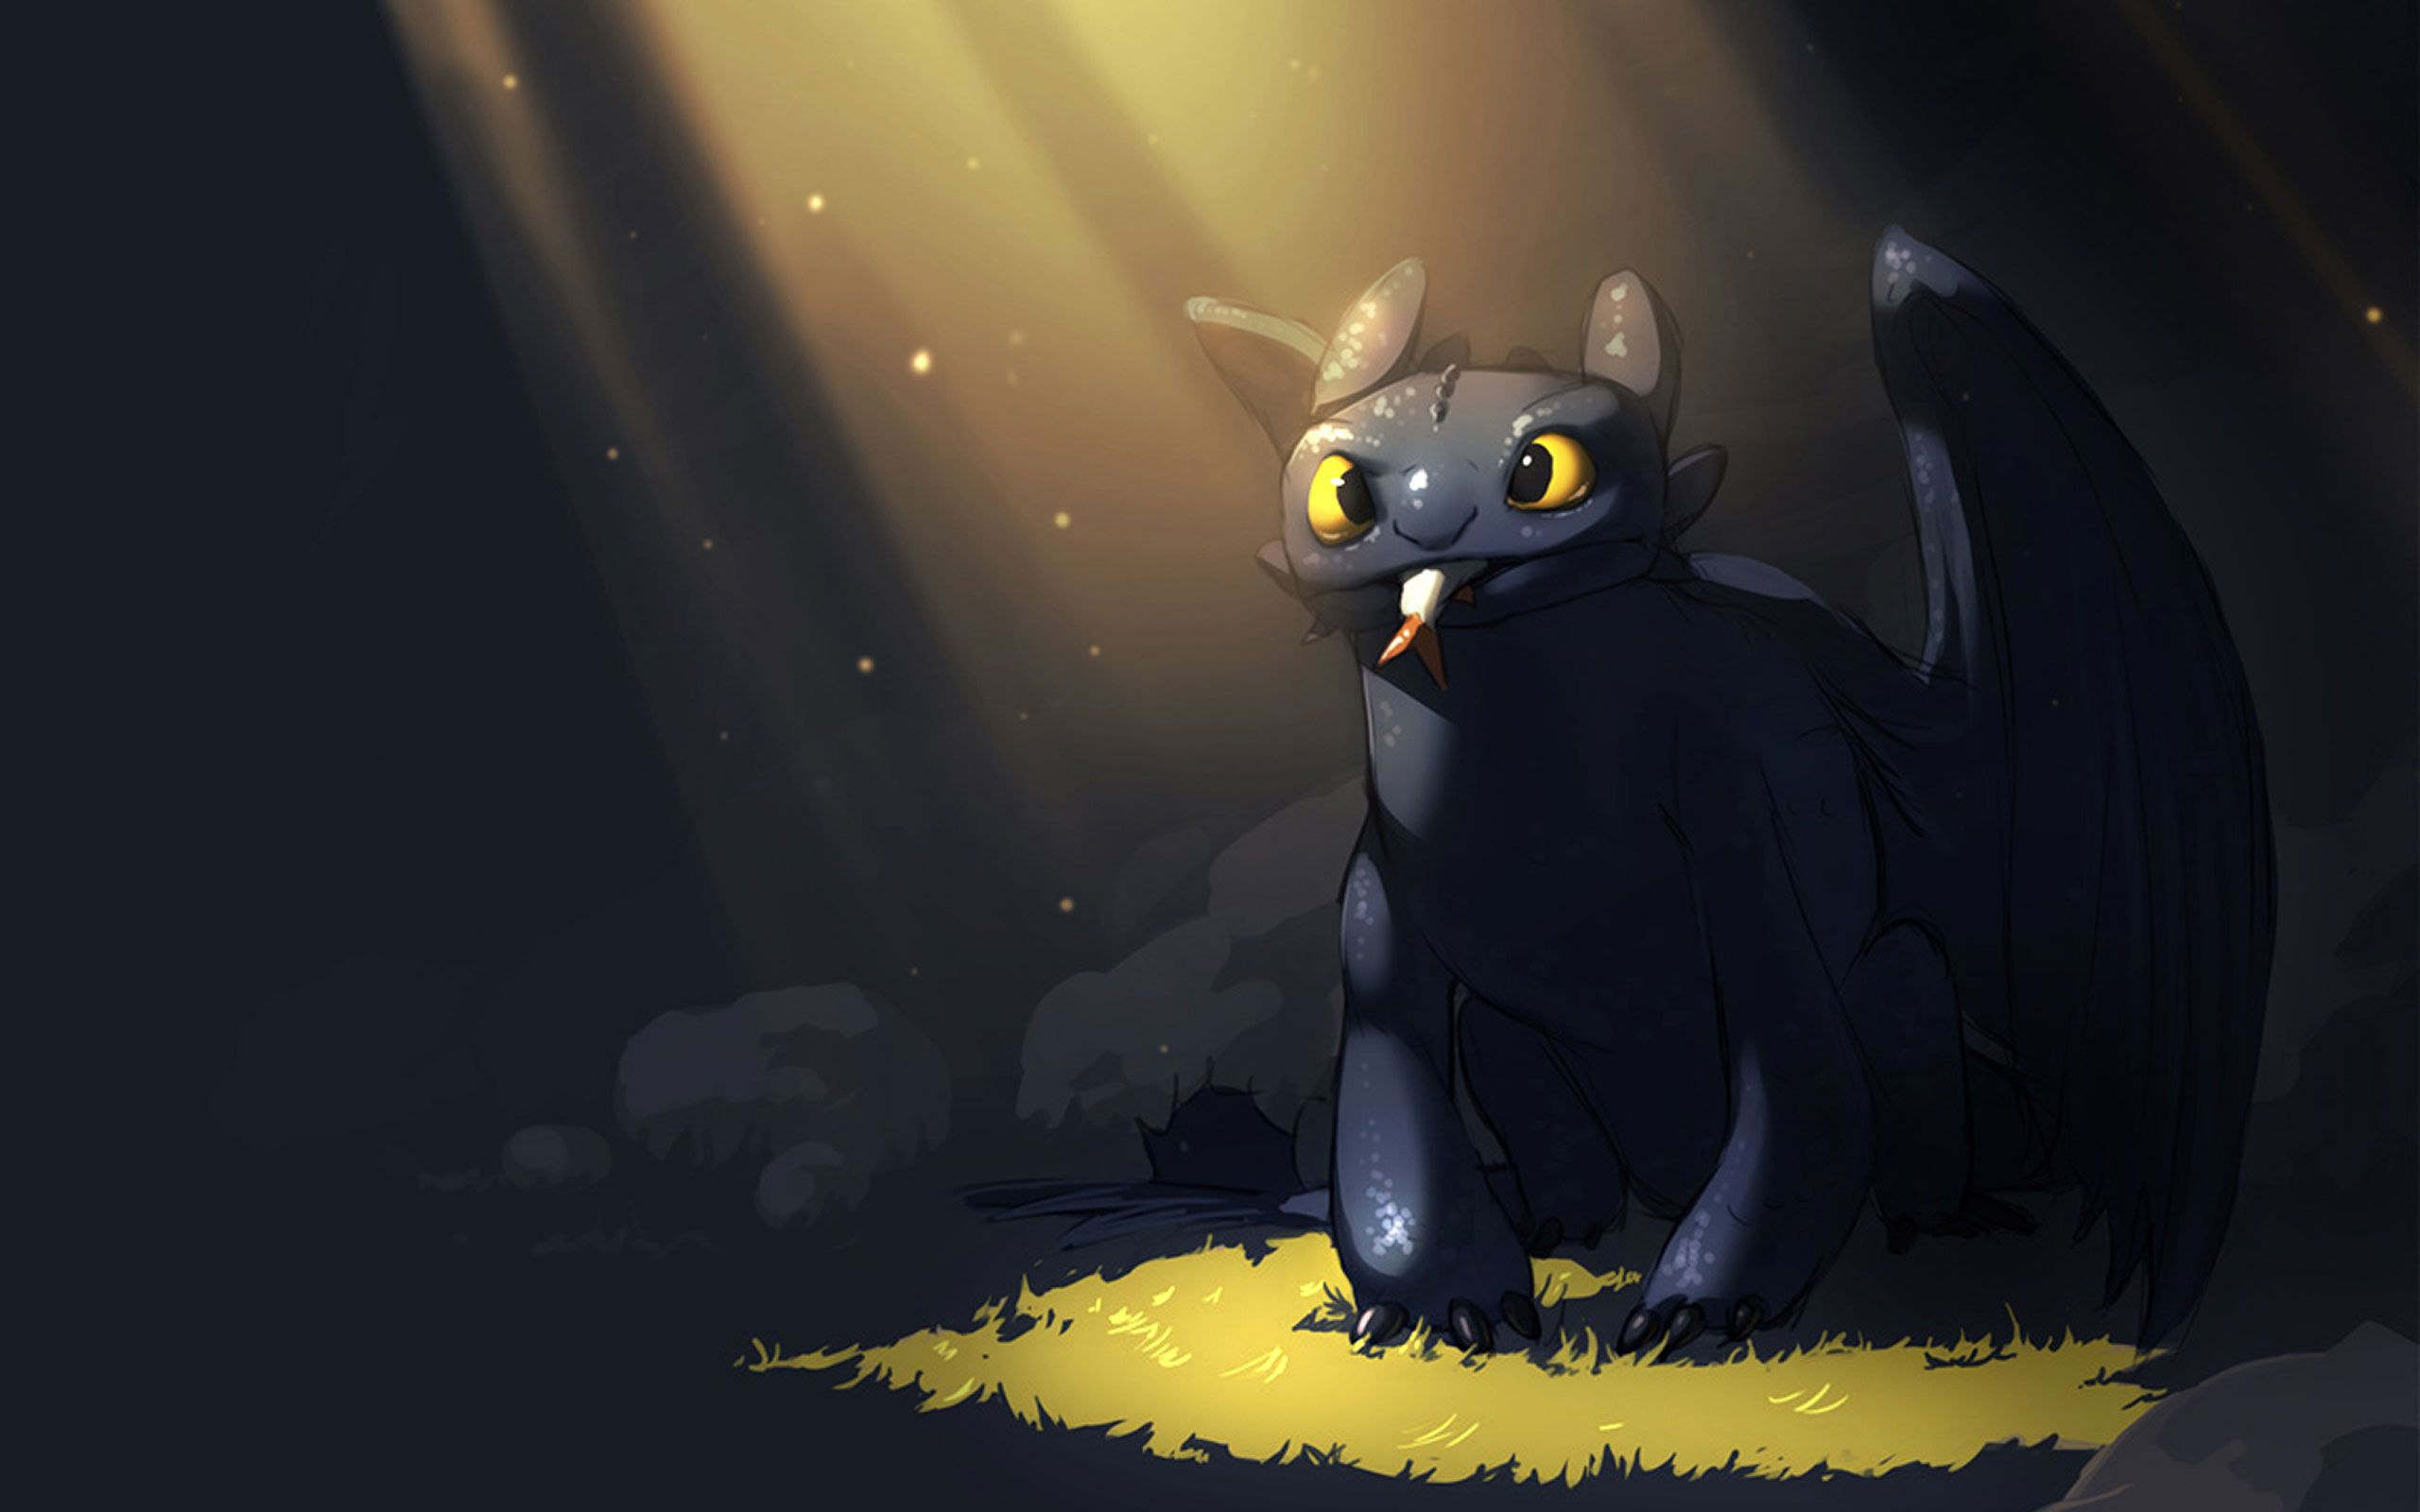 Toothless Dragon Wallpaper 2560x1600 18281 How Train Your Dragon Toothless Wallpaper How To Train Your Dragon